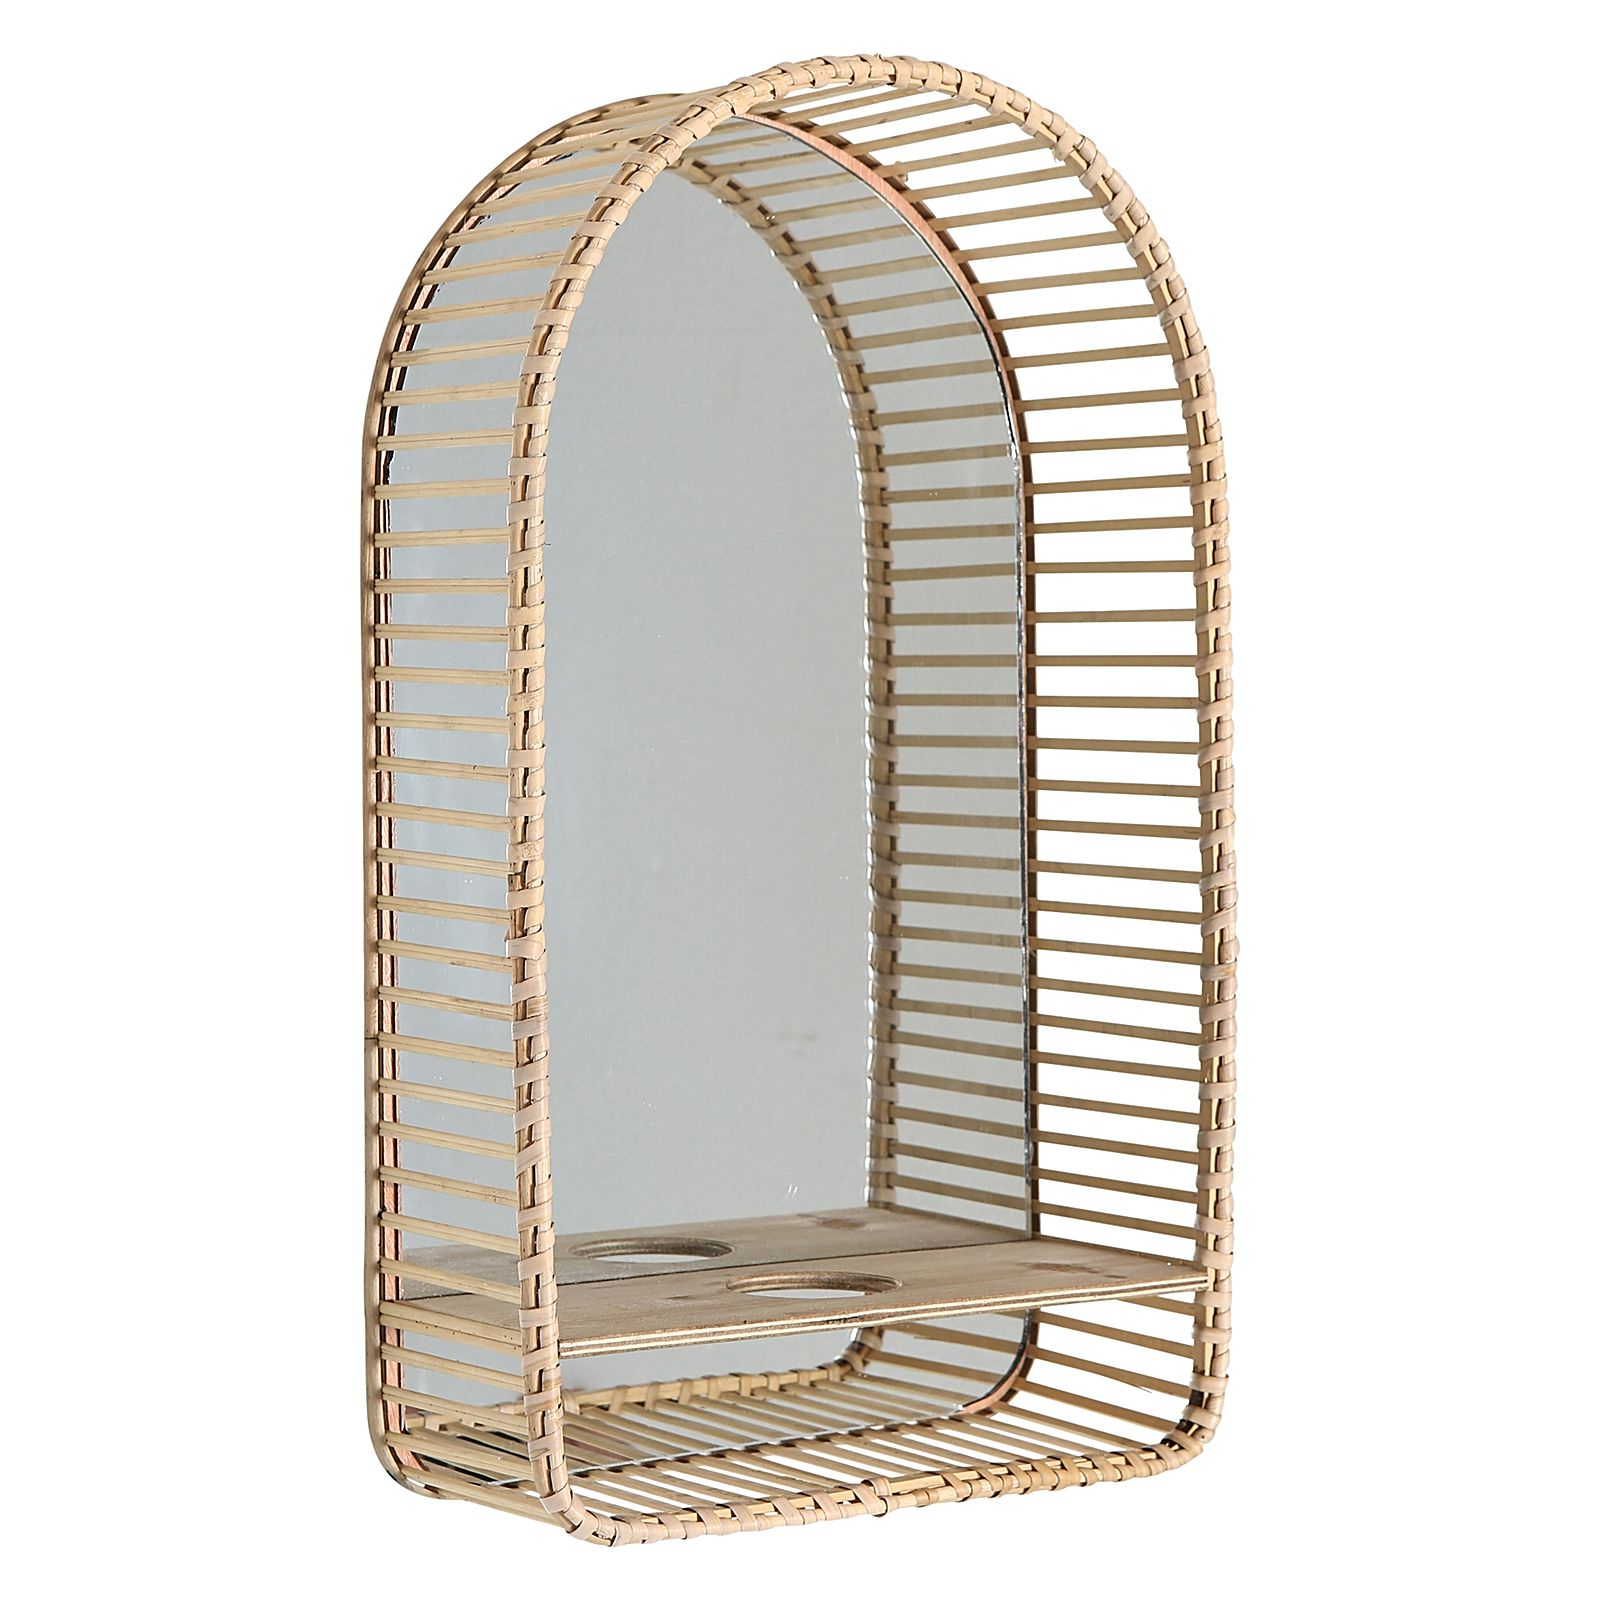 Hana Arch Wall Mirror With Candle Holder Intended For Trendy Reflection Wall Mirrors (View 8 of 20)